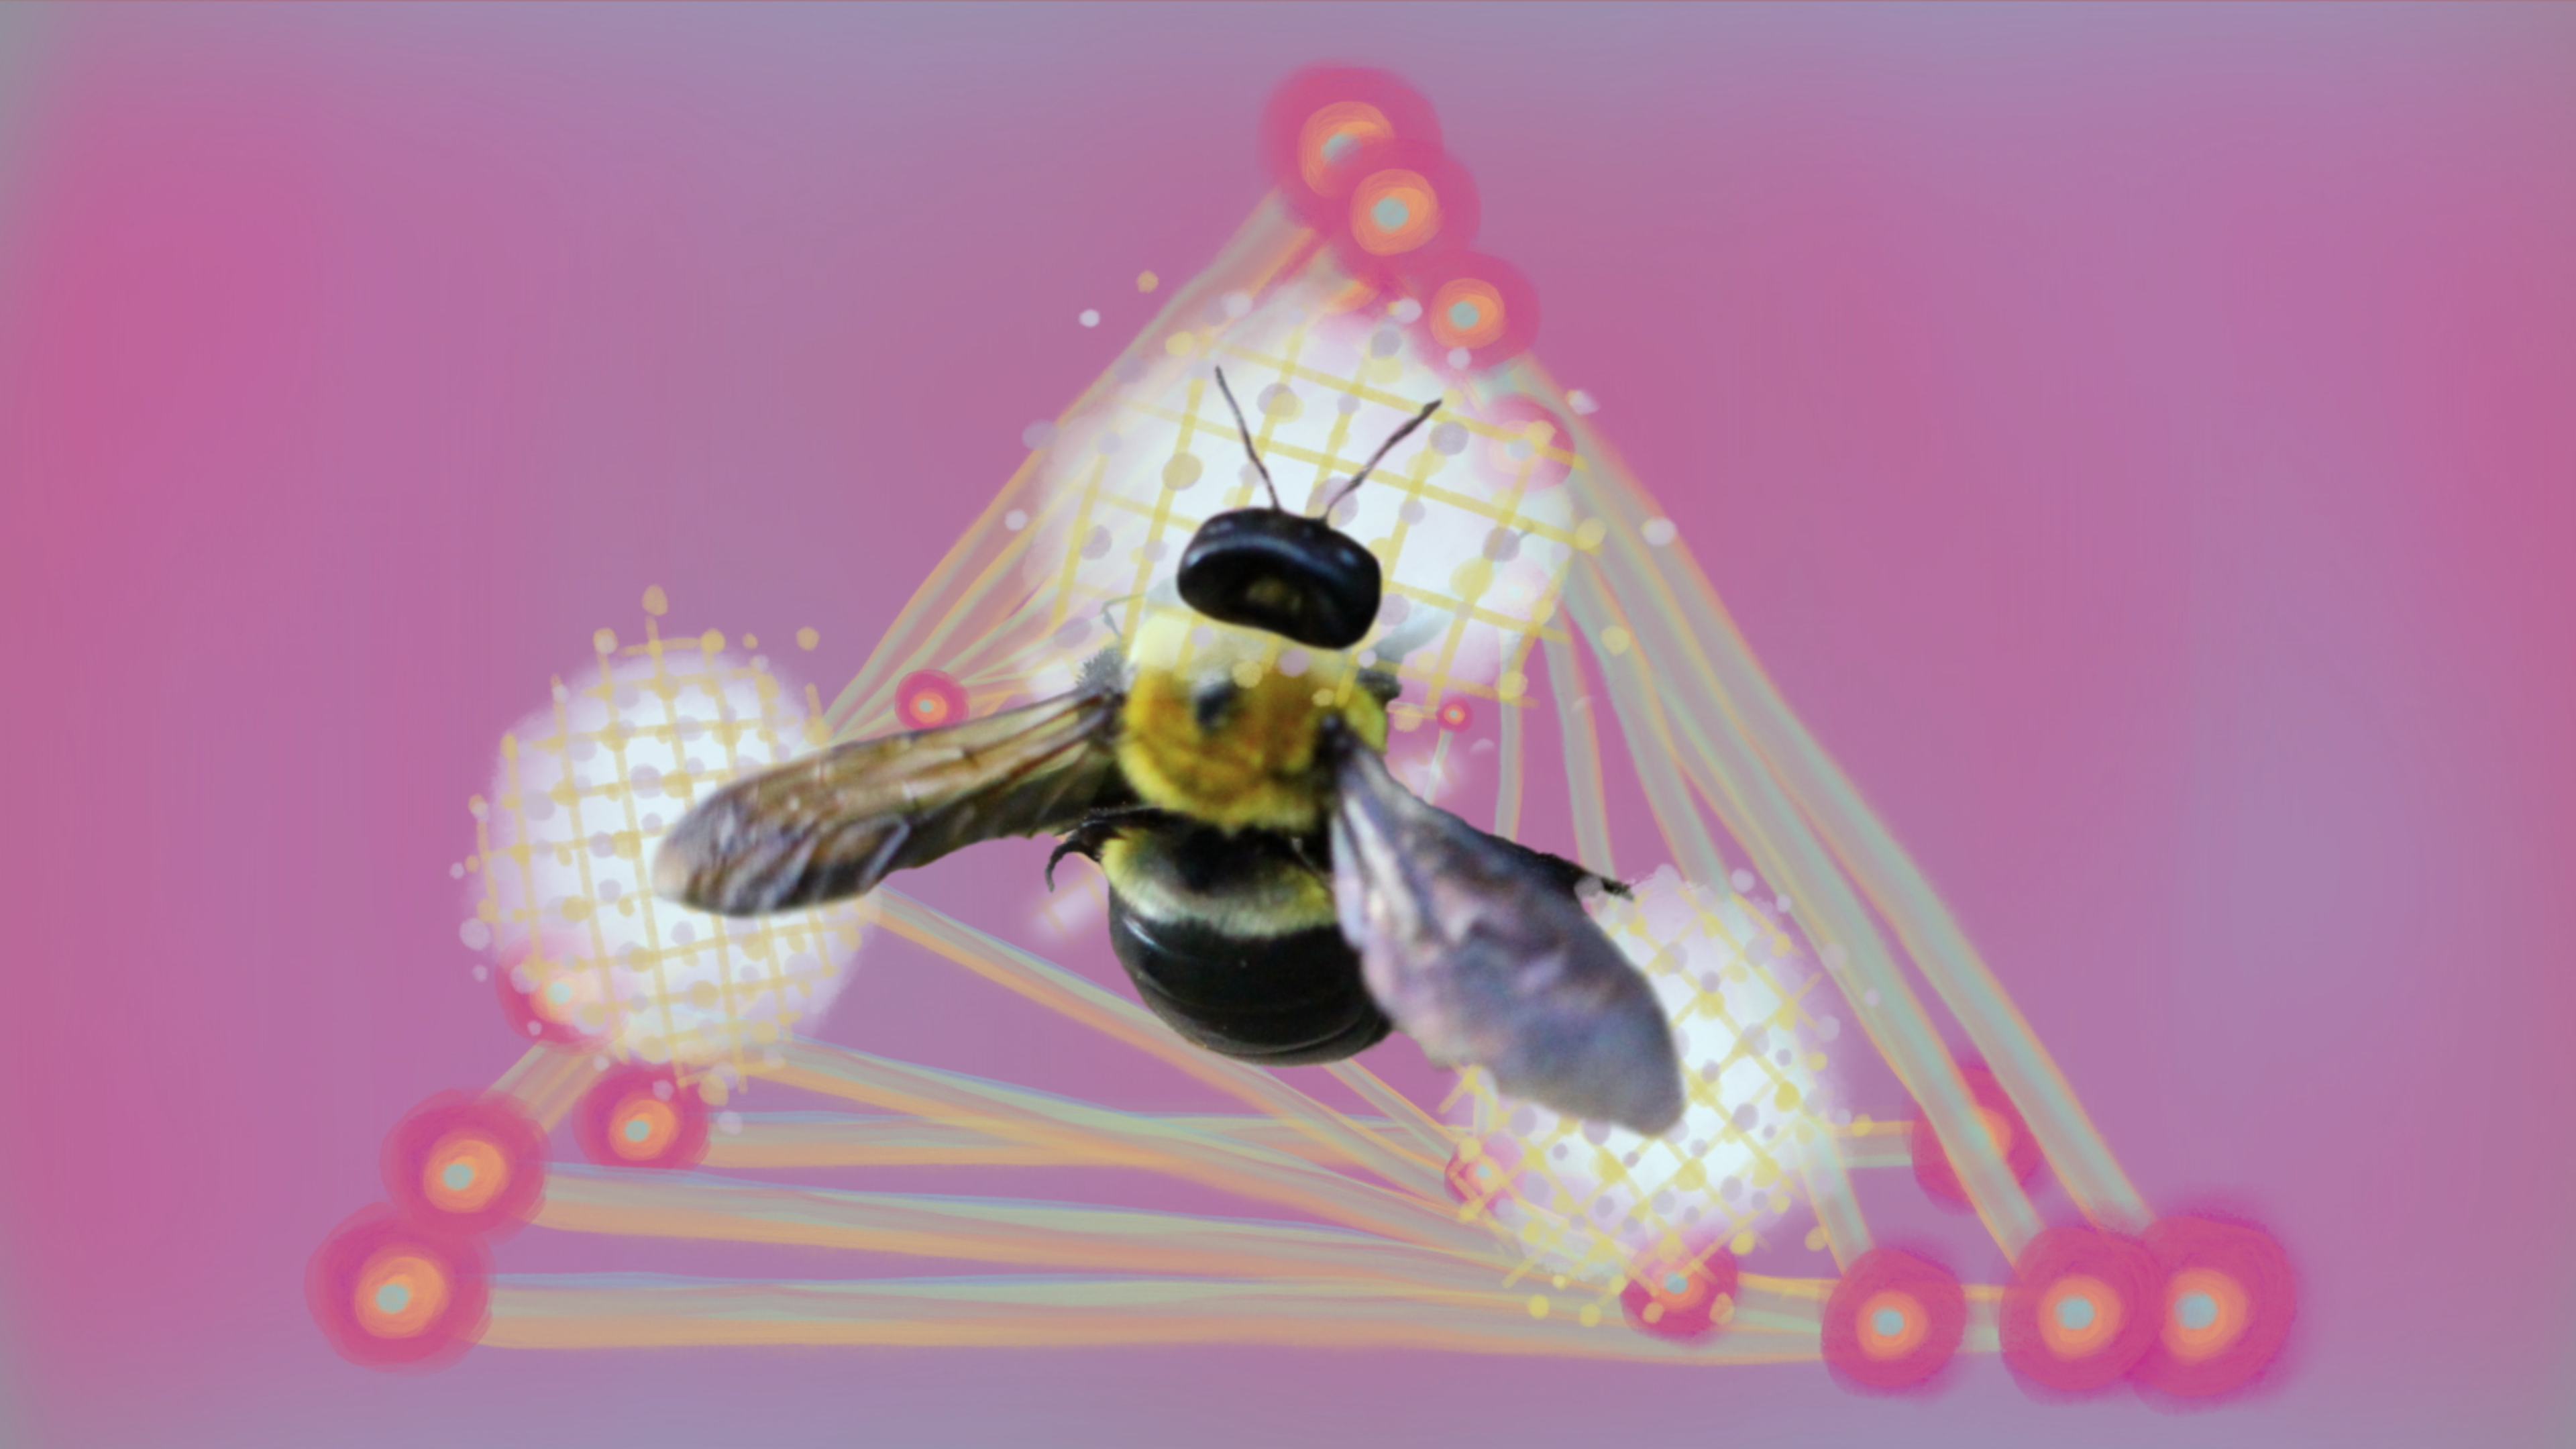 an image of a bee surrounded by surreal lights on a purple backgroiund